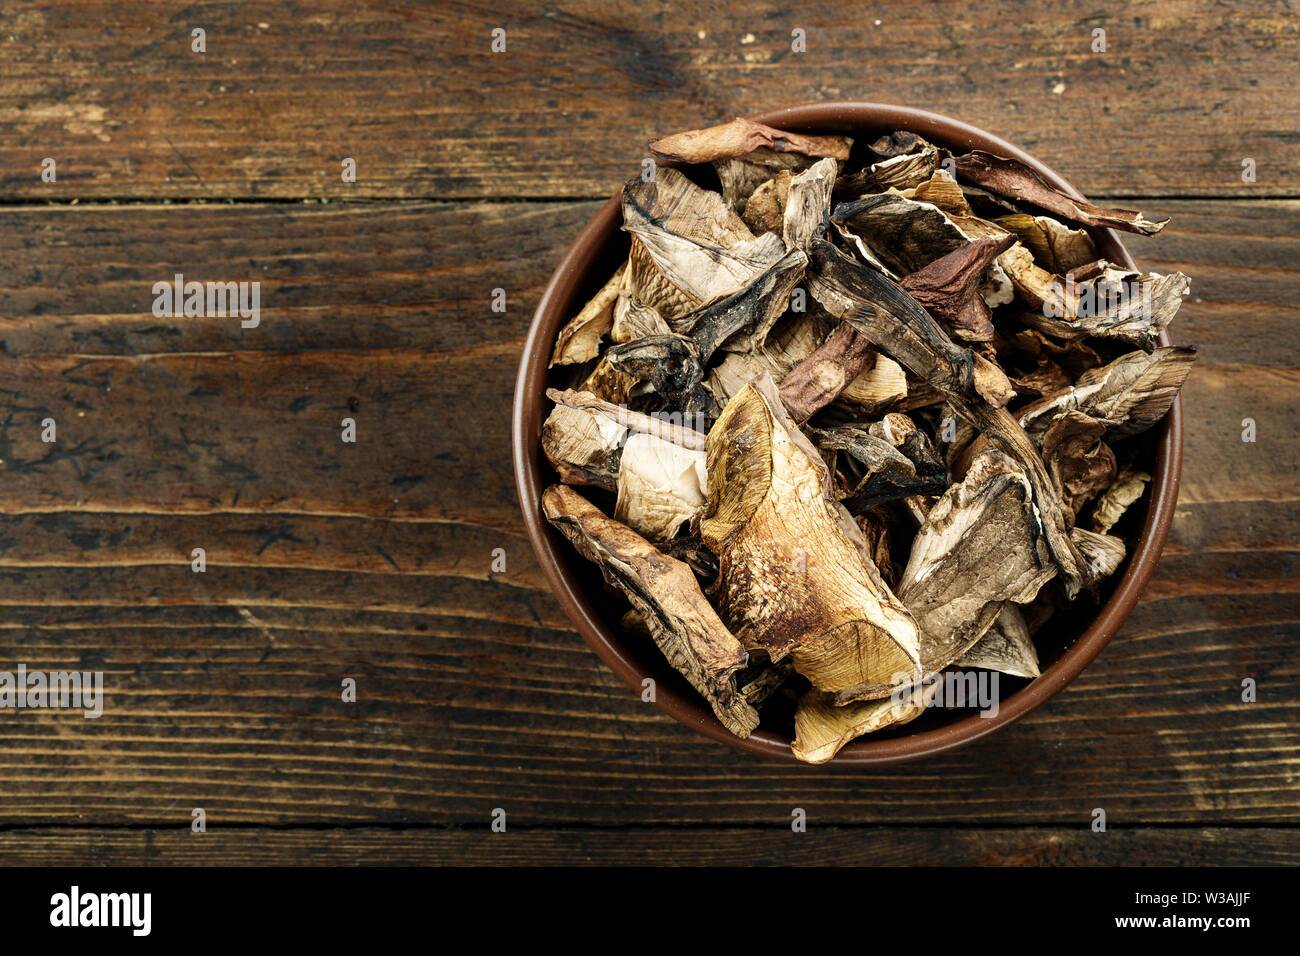 dried mushrooms in a clay plate on a brown wooden table - Stock Image